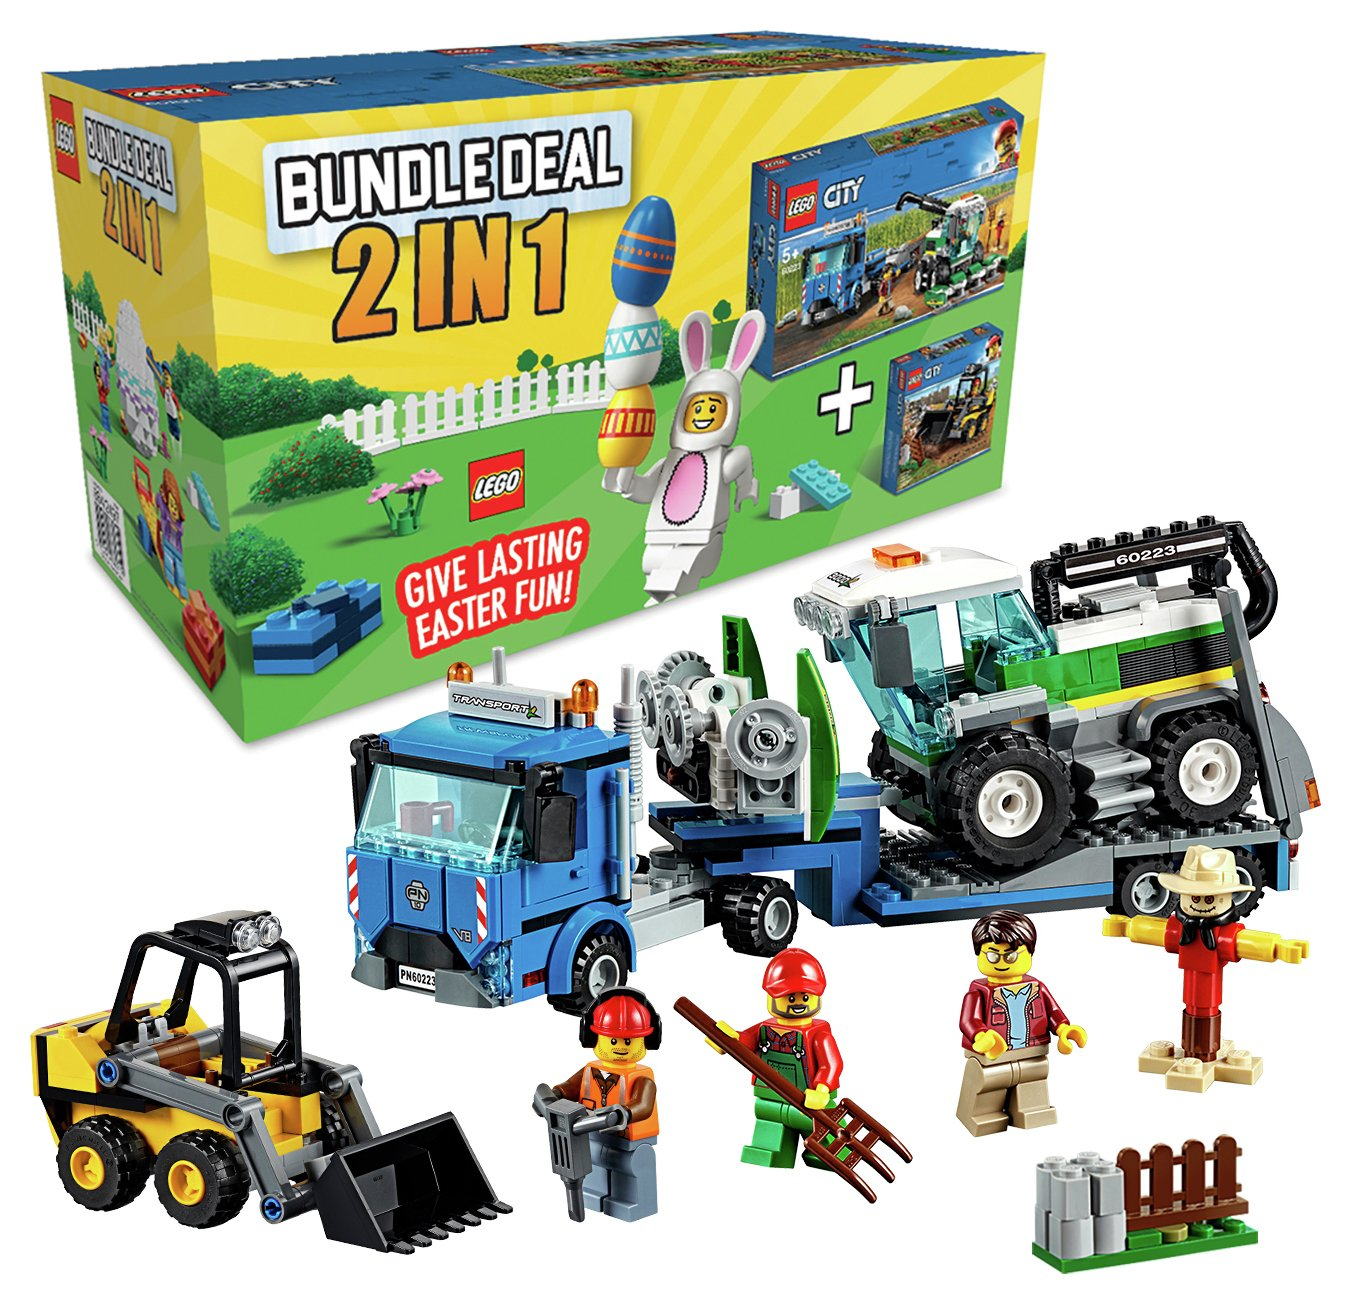 LEGO City Bundle, Harvester Transport and Loader Toy Truck